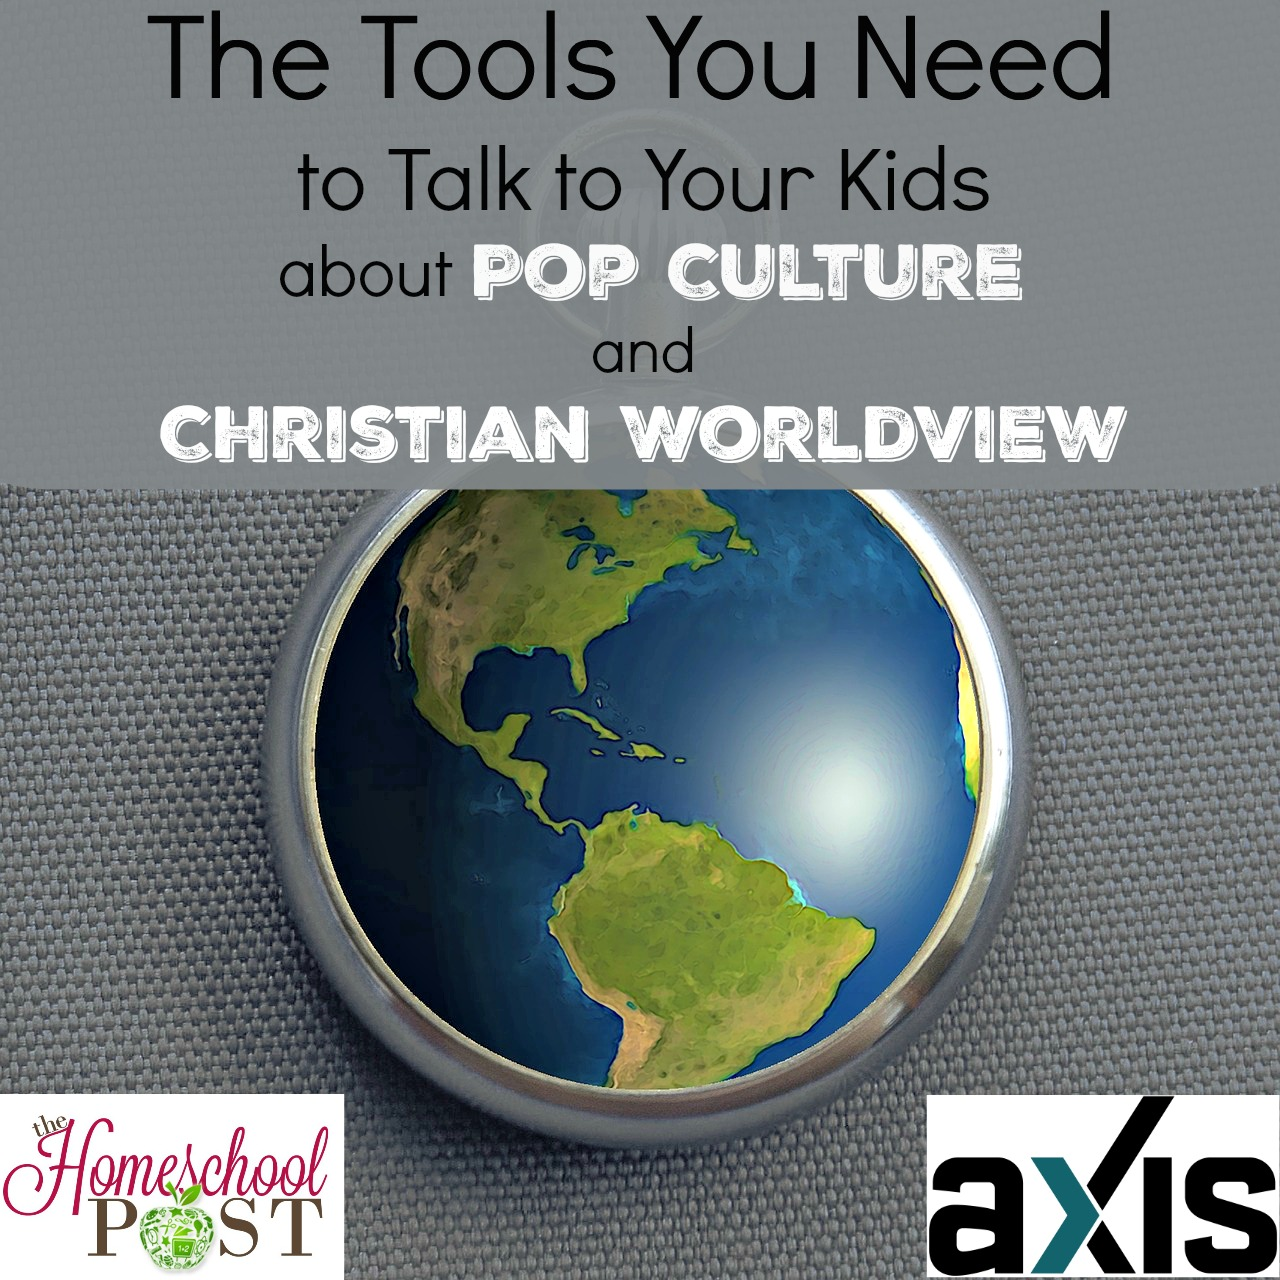 christian worldview and culture Shaping your worldview one of the most powerful aspects of culture is reinforcing worldview assumptions a basic understanding of the christian worldview.